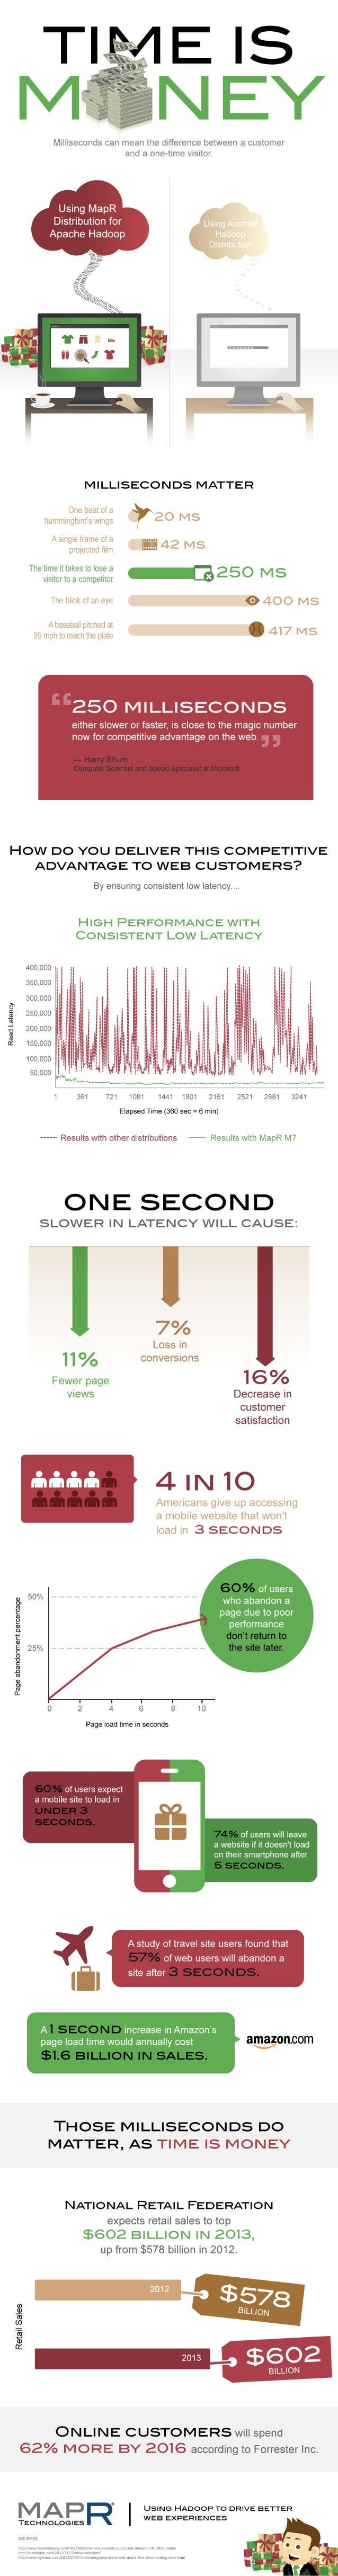 Time Is Money - The Infographic To Know During The Holidays